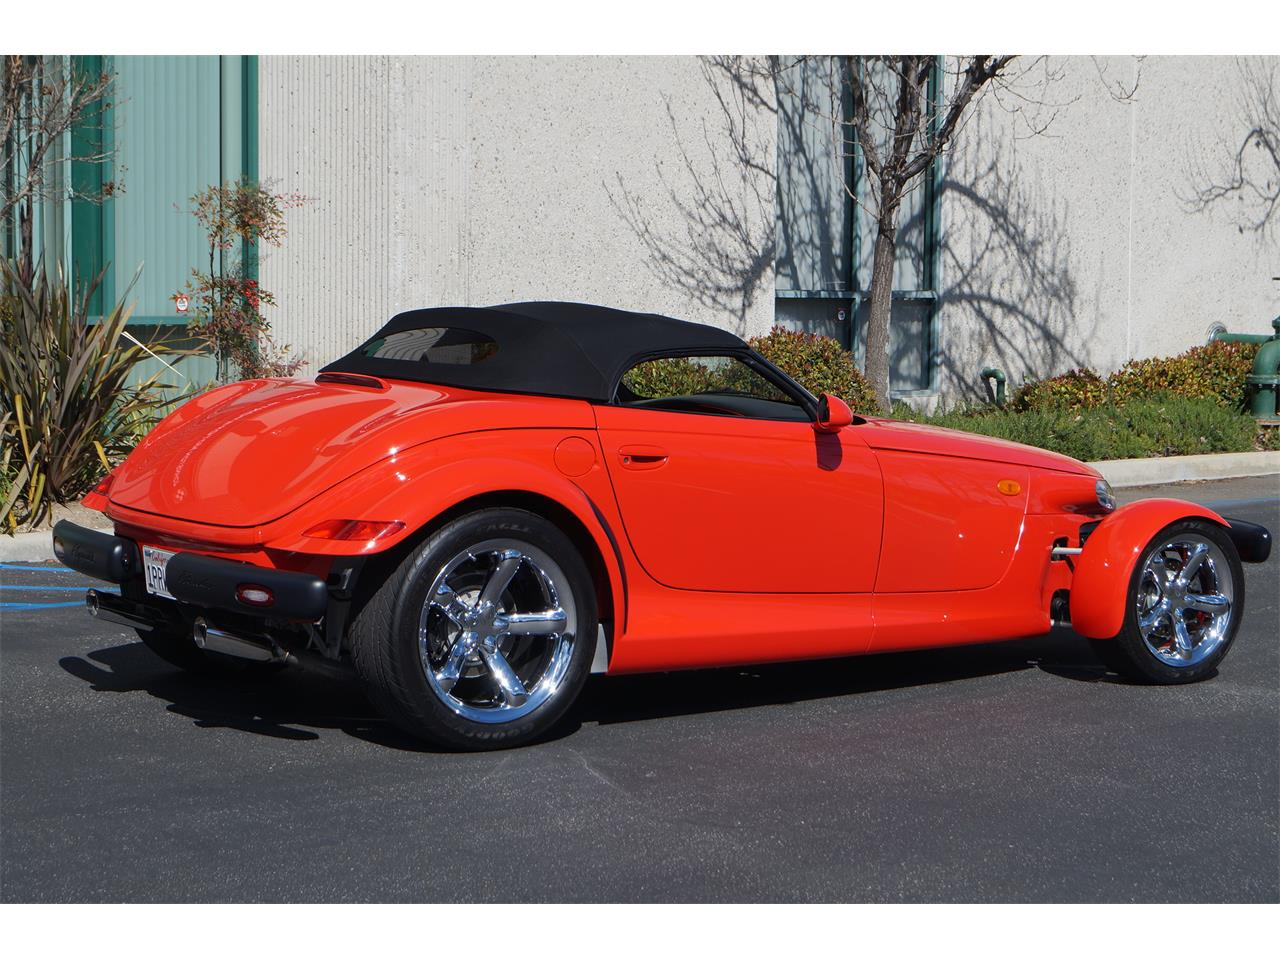 2000 Plymouth Prowler for sale in Thousand Oaks, CA – photo 8